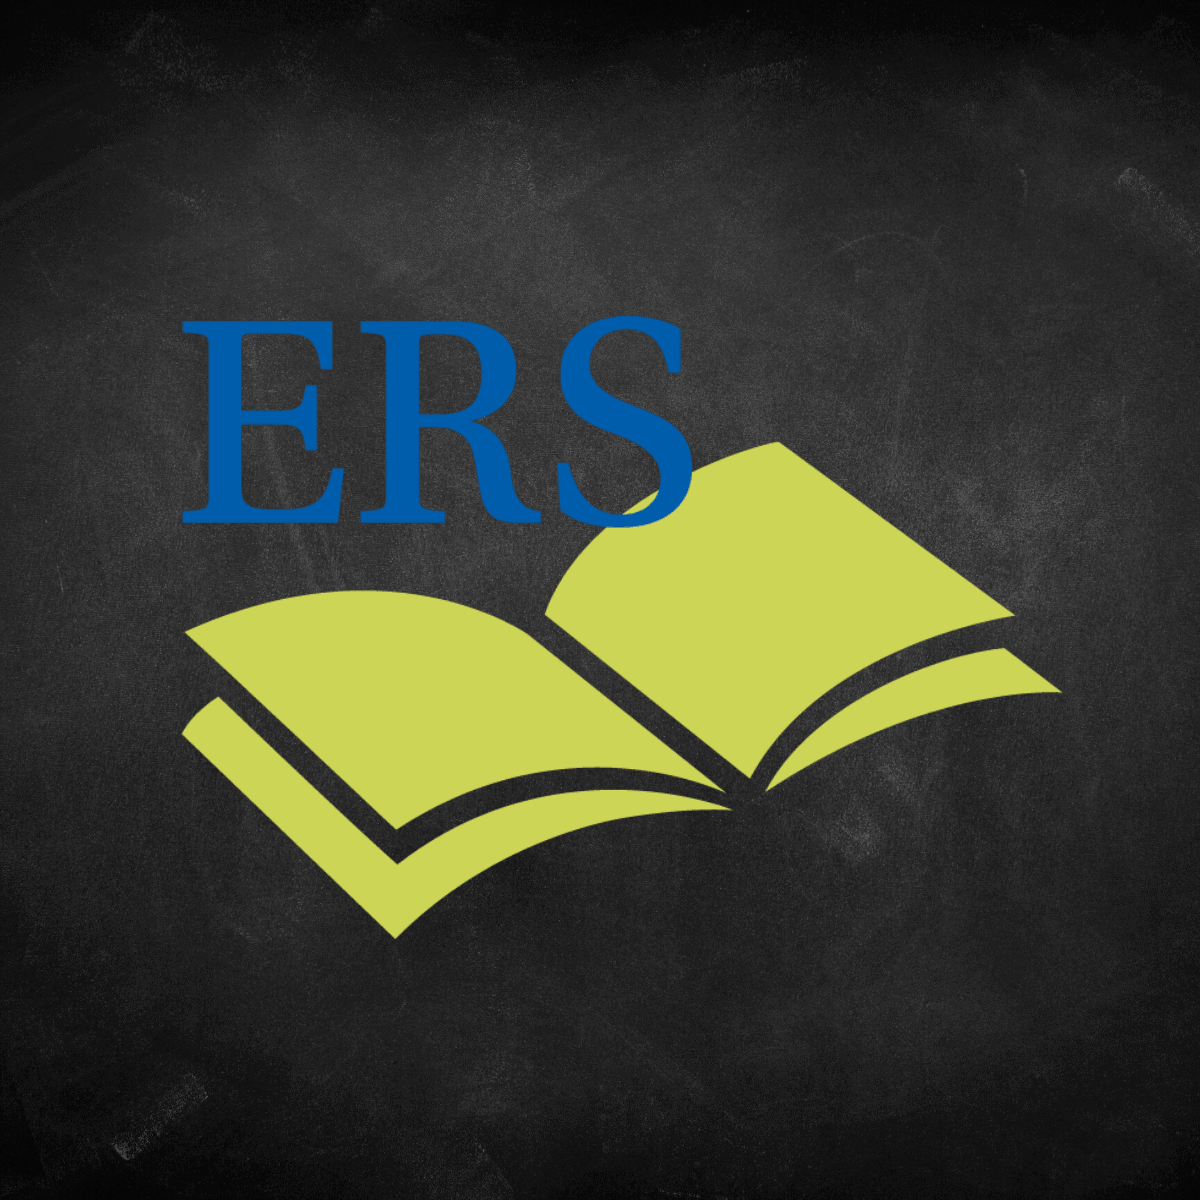 Logo that says ERS in blue text with a green book